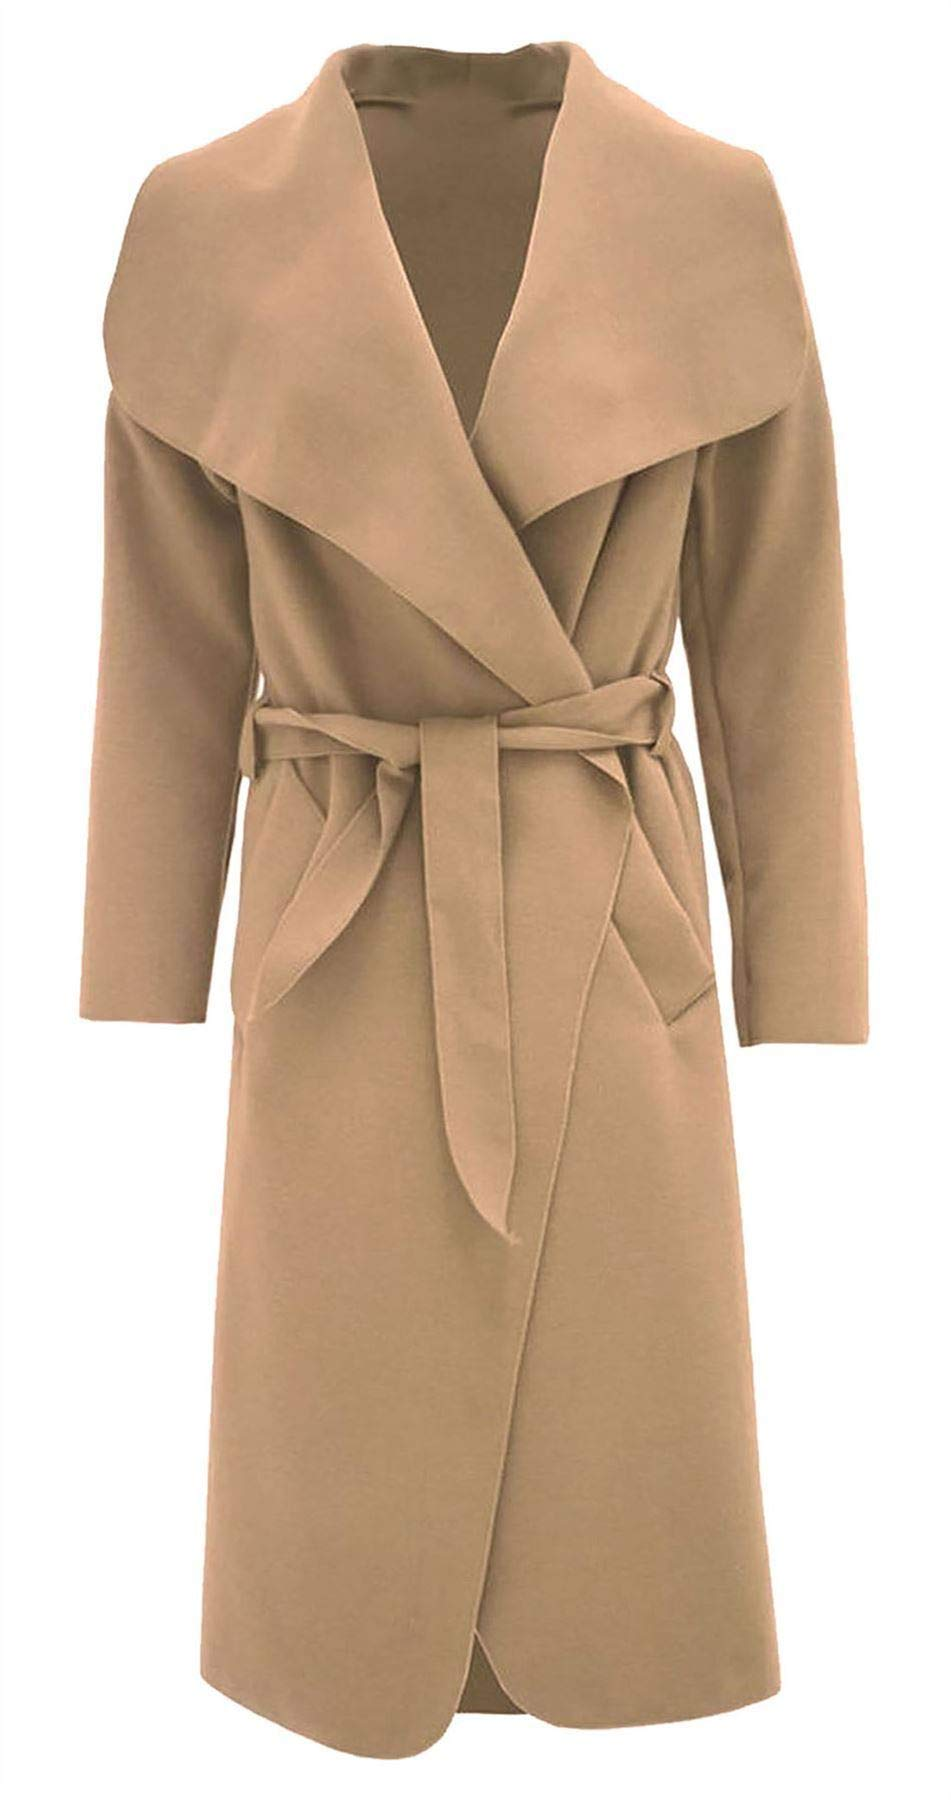 REAL LIFE FASHION LTD Womens Italian Long Duster Jacket Ladies French Belted Trench Waterfall Coat#(Camel Italian Long Duster Waterfall Jacket #US 10-12#Womens)